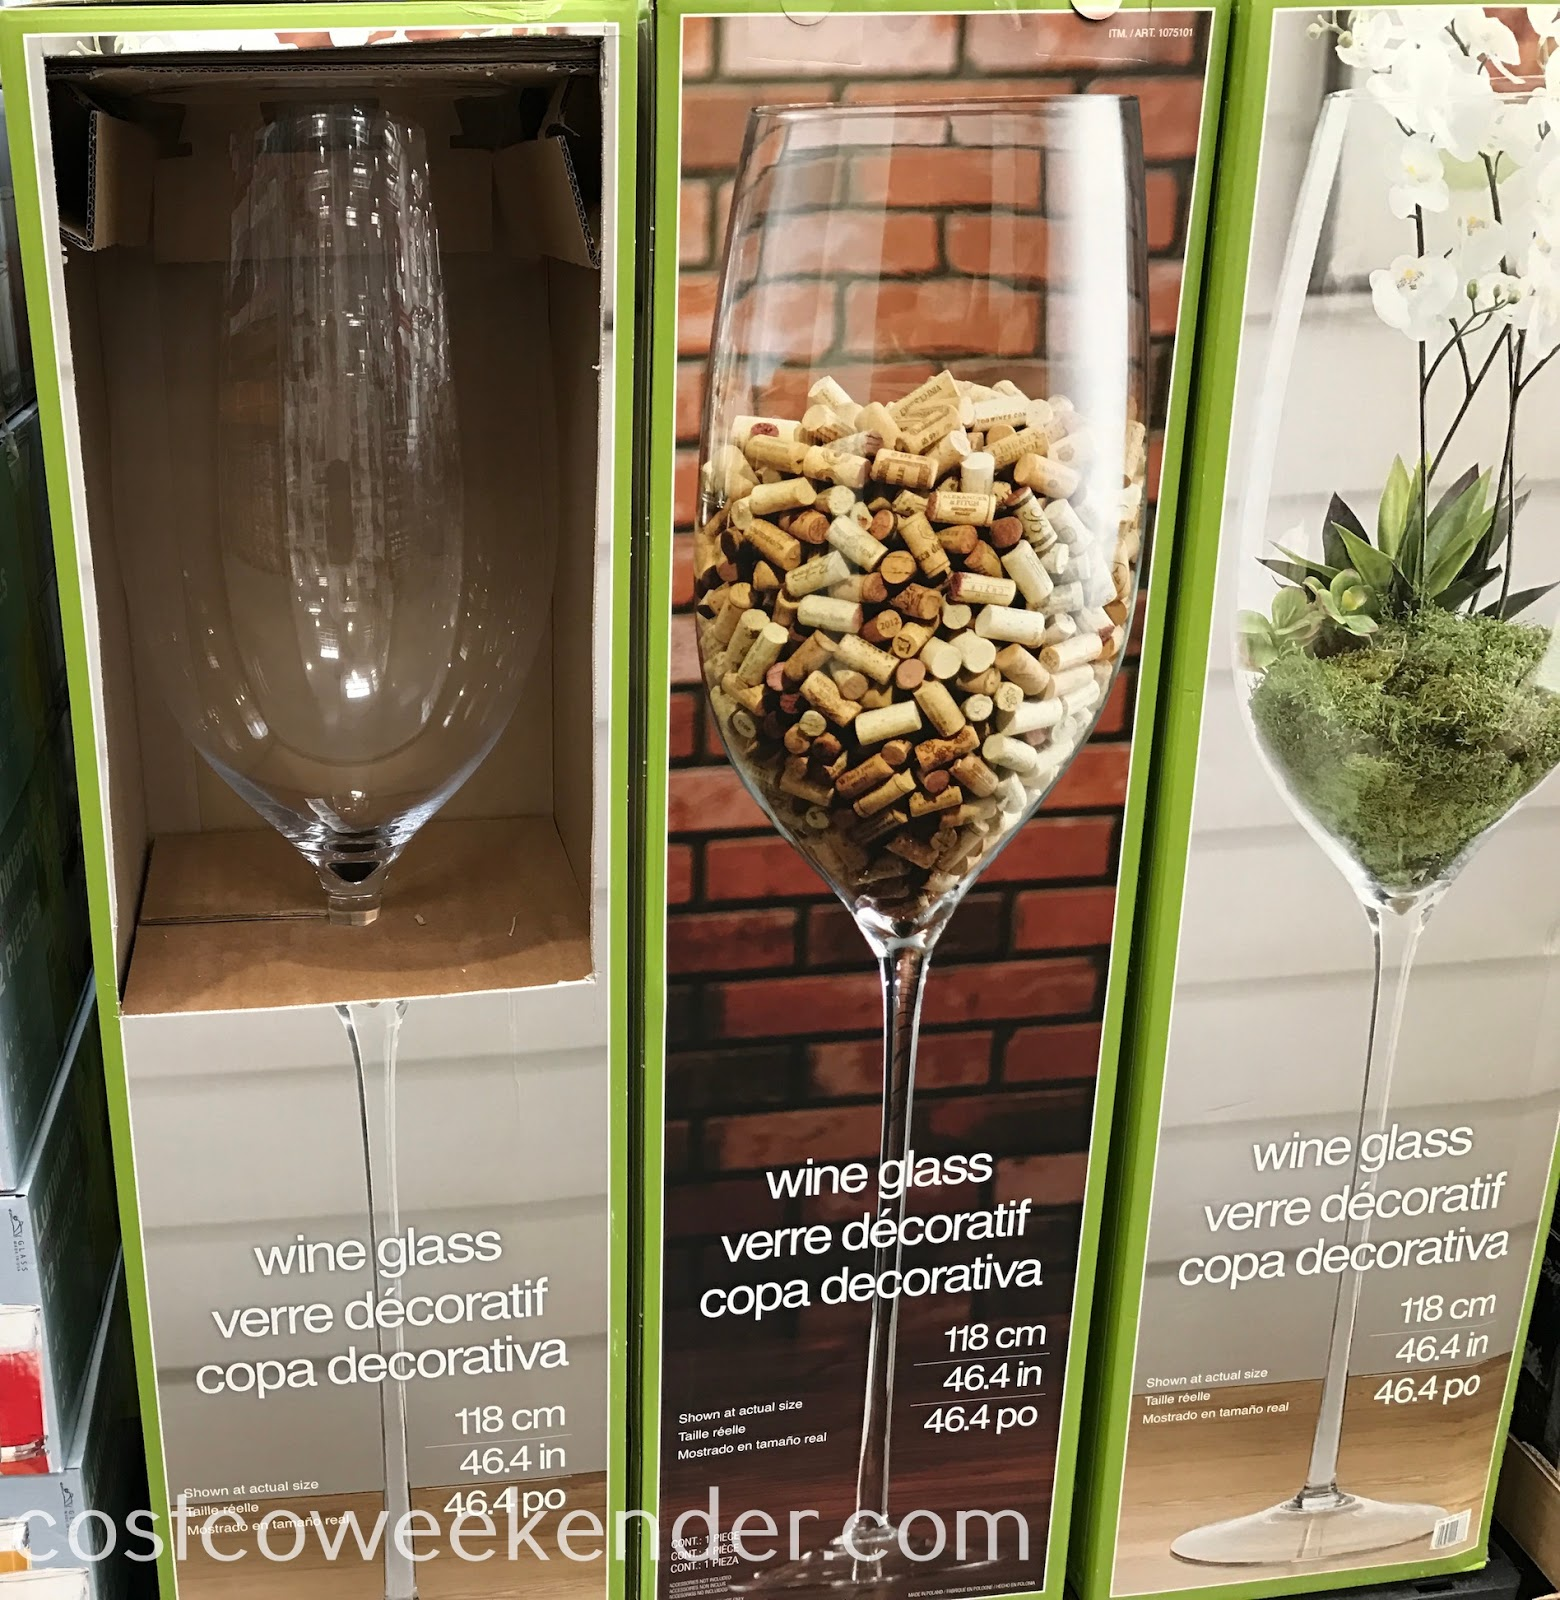 5975326d8a6 Decorative Wine Glass Costco - Glass Designs